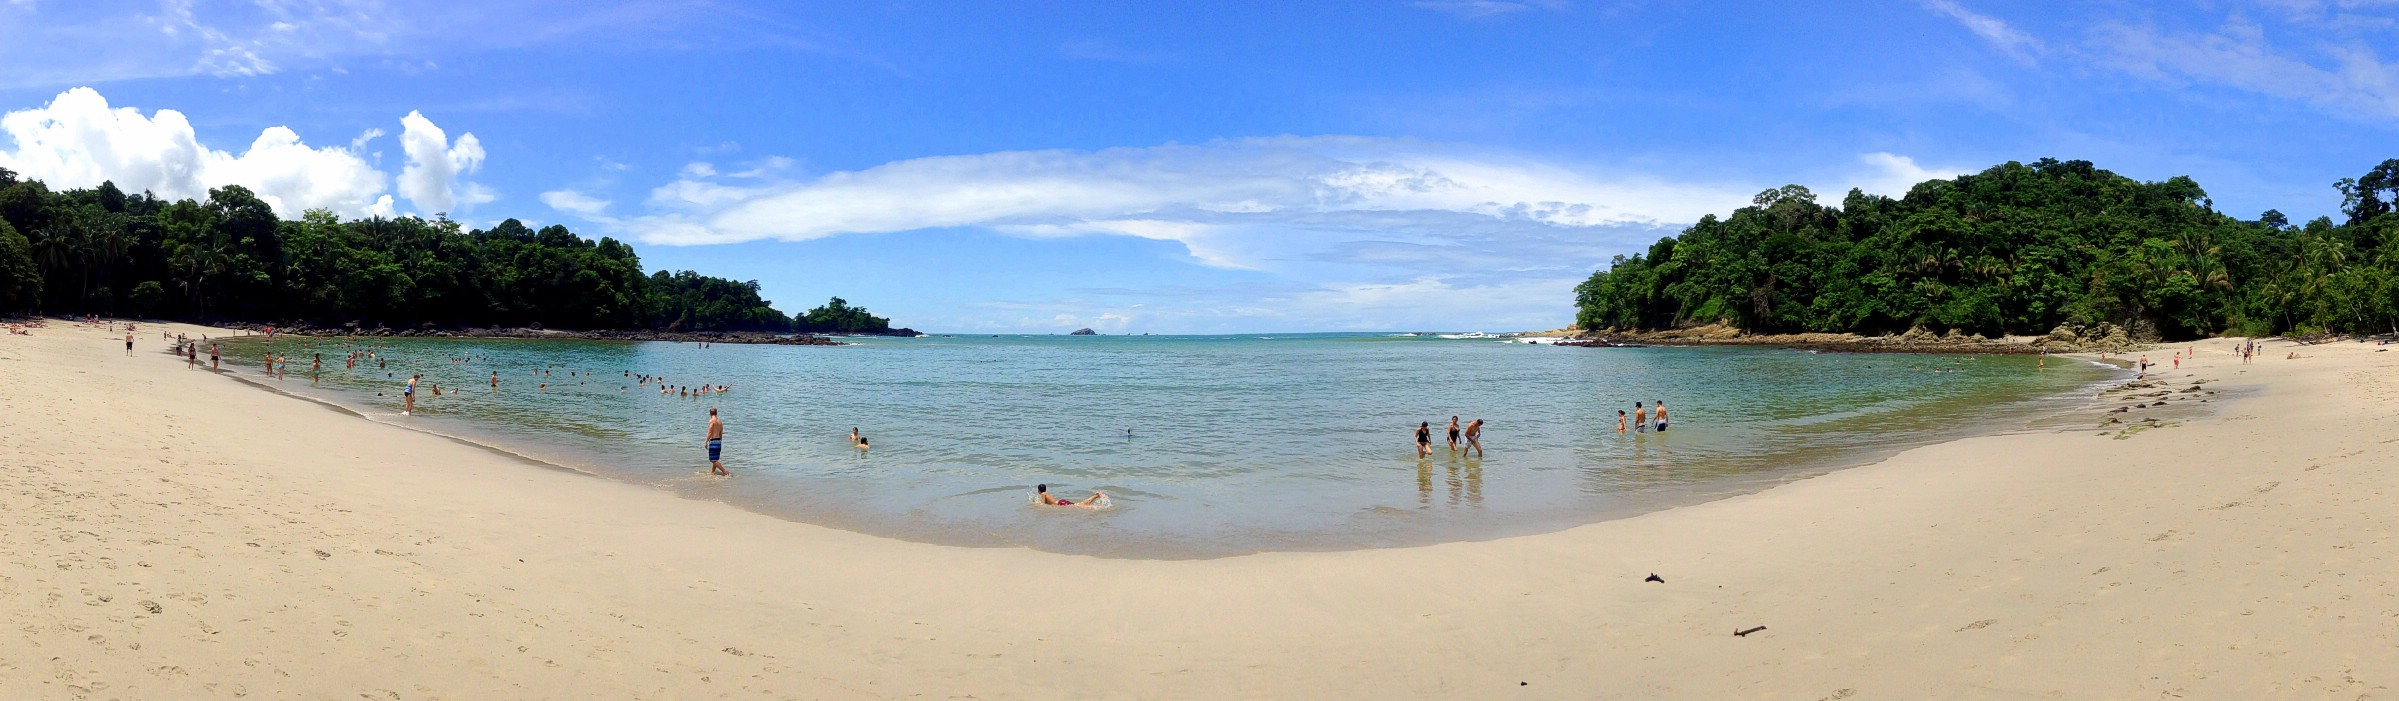 A panorama showing the grin of Playa Manuel Antonio of Parque Nacional Manuel Antonio, Costa Rica. June 26th 2013 (iPod) ***Click on image to view full screen. ***